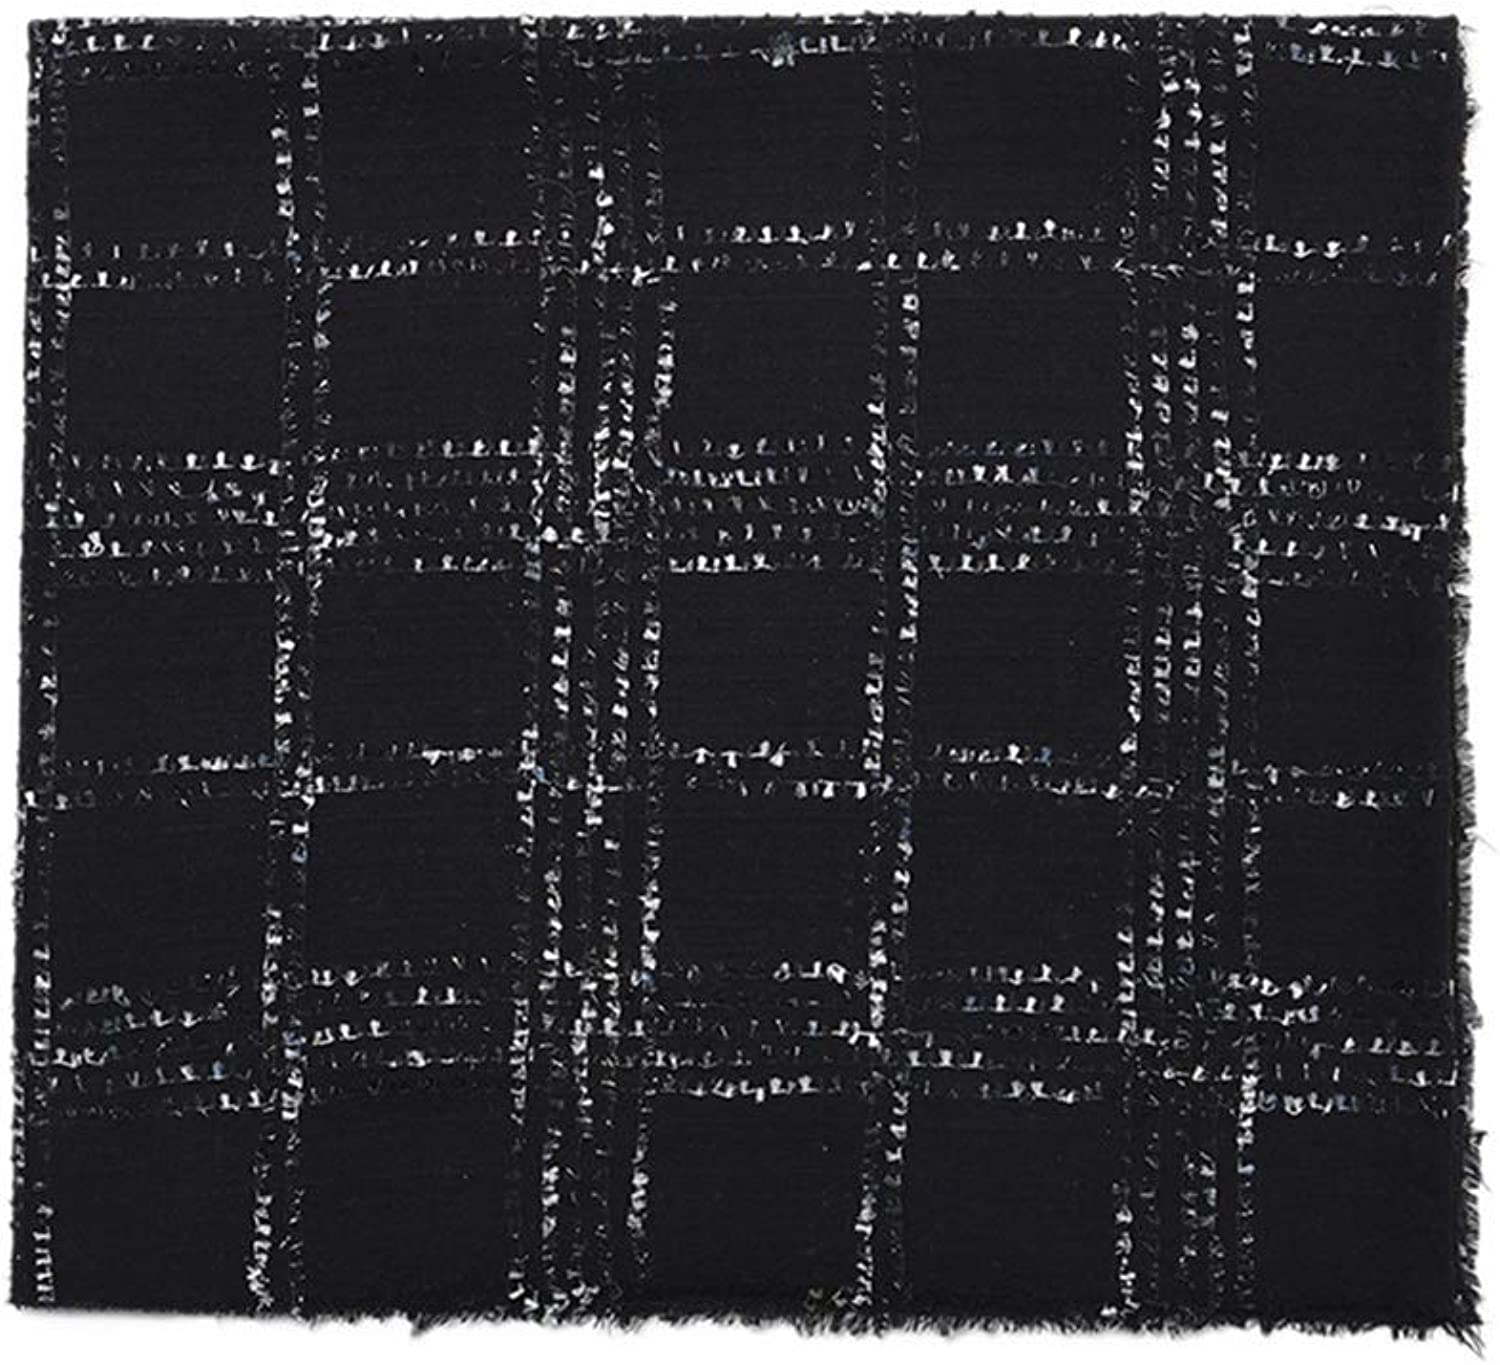 Women's Scarves, 100% Quality Wool Scarf Fall Winter Shawl, Monochrome Jacquard Scarf, 194x85cm